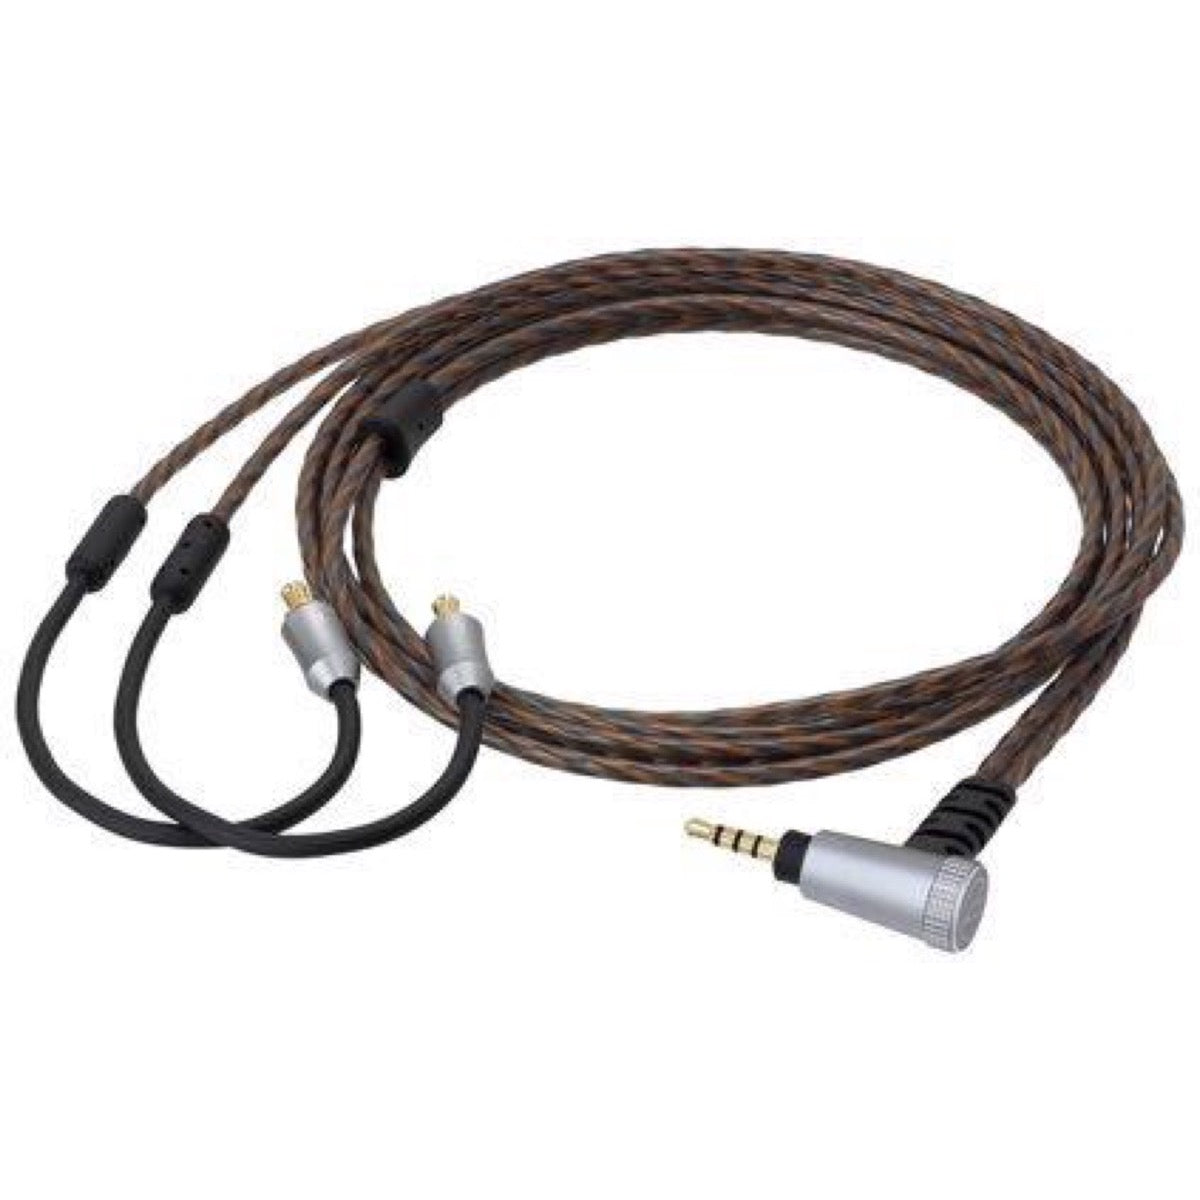 Audio-Technica HDC312A1.2 Detachable Headphone Cable